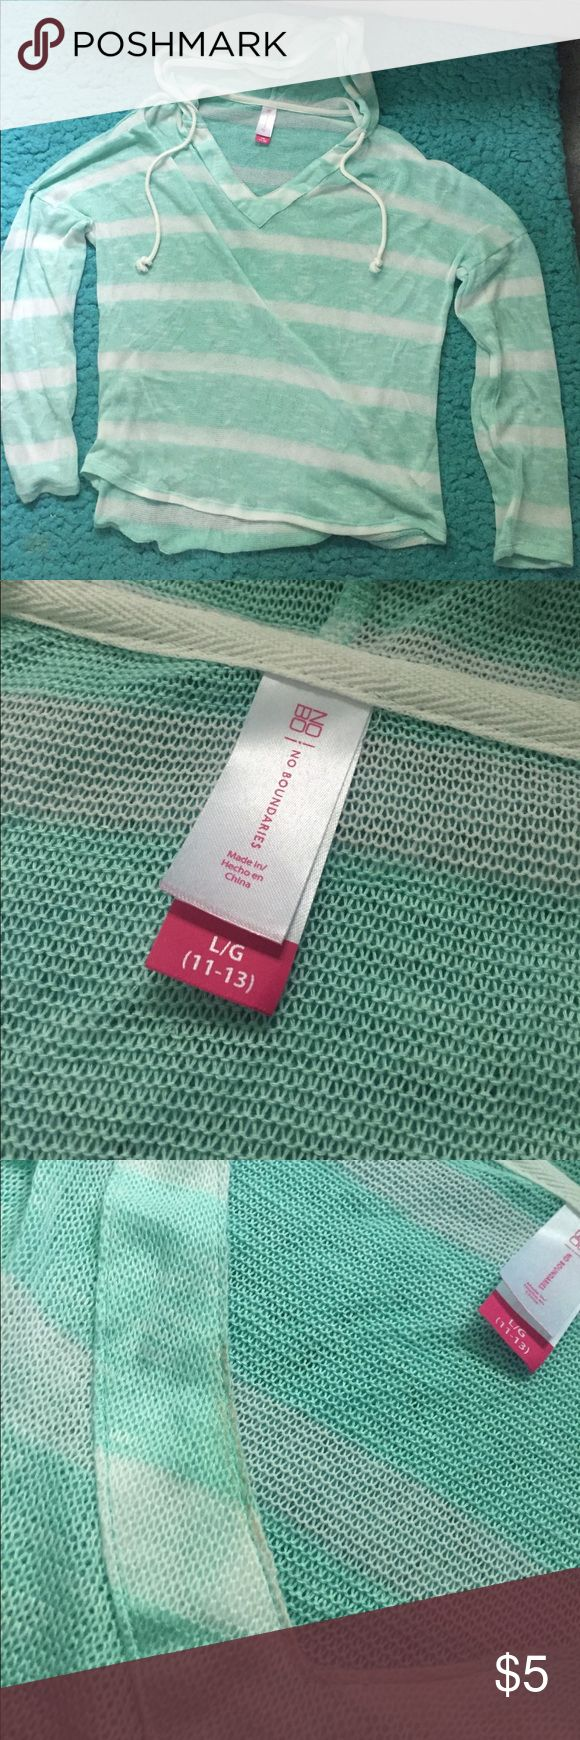 No Boundaries Juniors Thin Hoodie Mint Green NOBO Juniors Thin Hoodie. Bought and only wore to try on then never wore it again. Has a very slight makeup stain on collar from trying on, but should come out with wash. No Boundaries Tops Sweatshirts & Hoodies